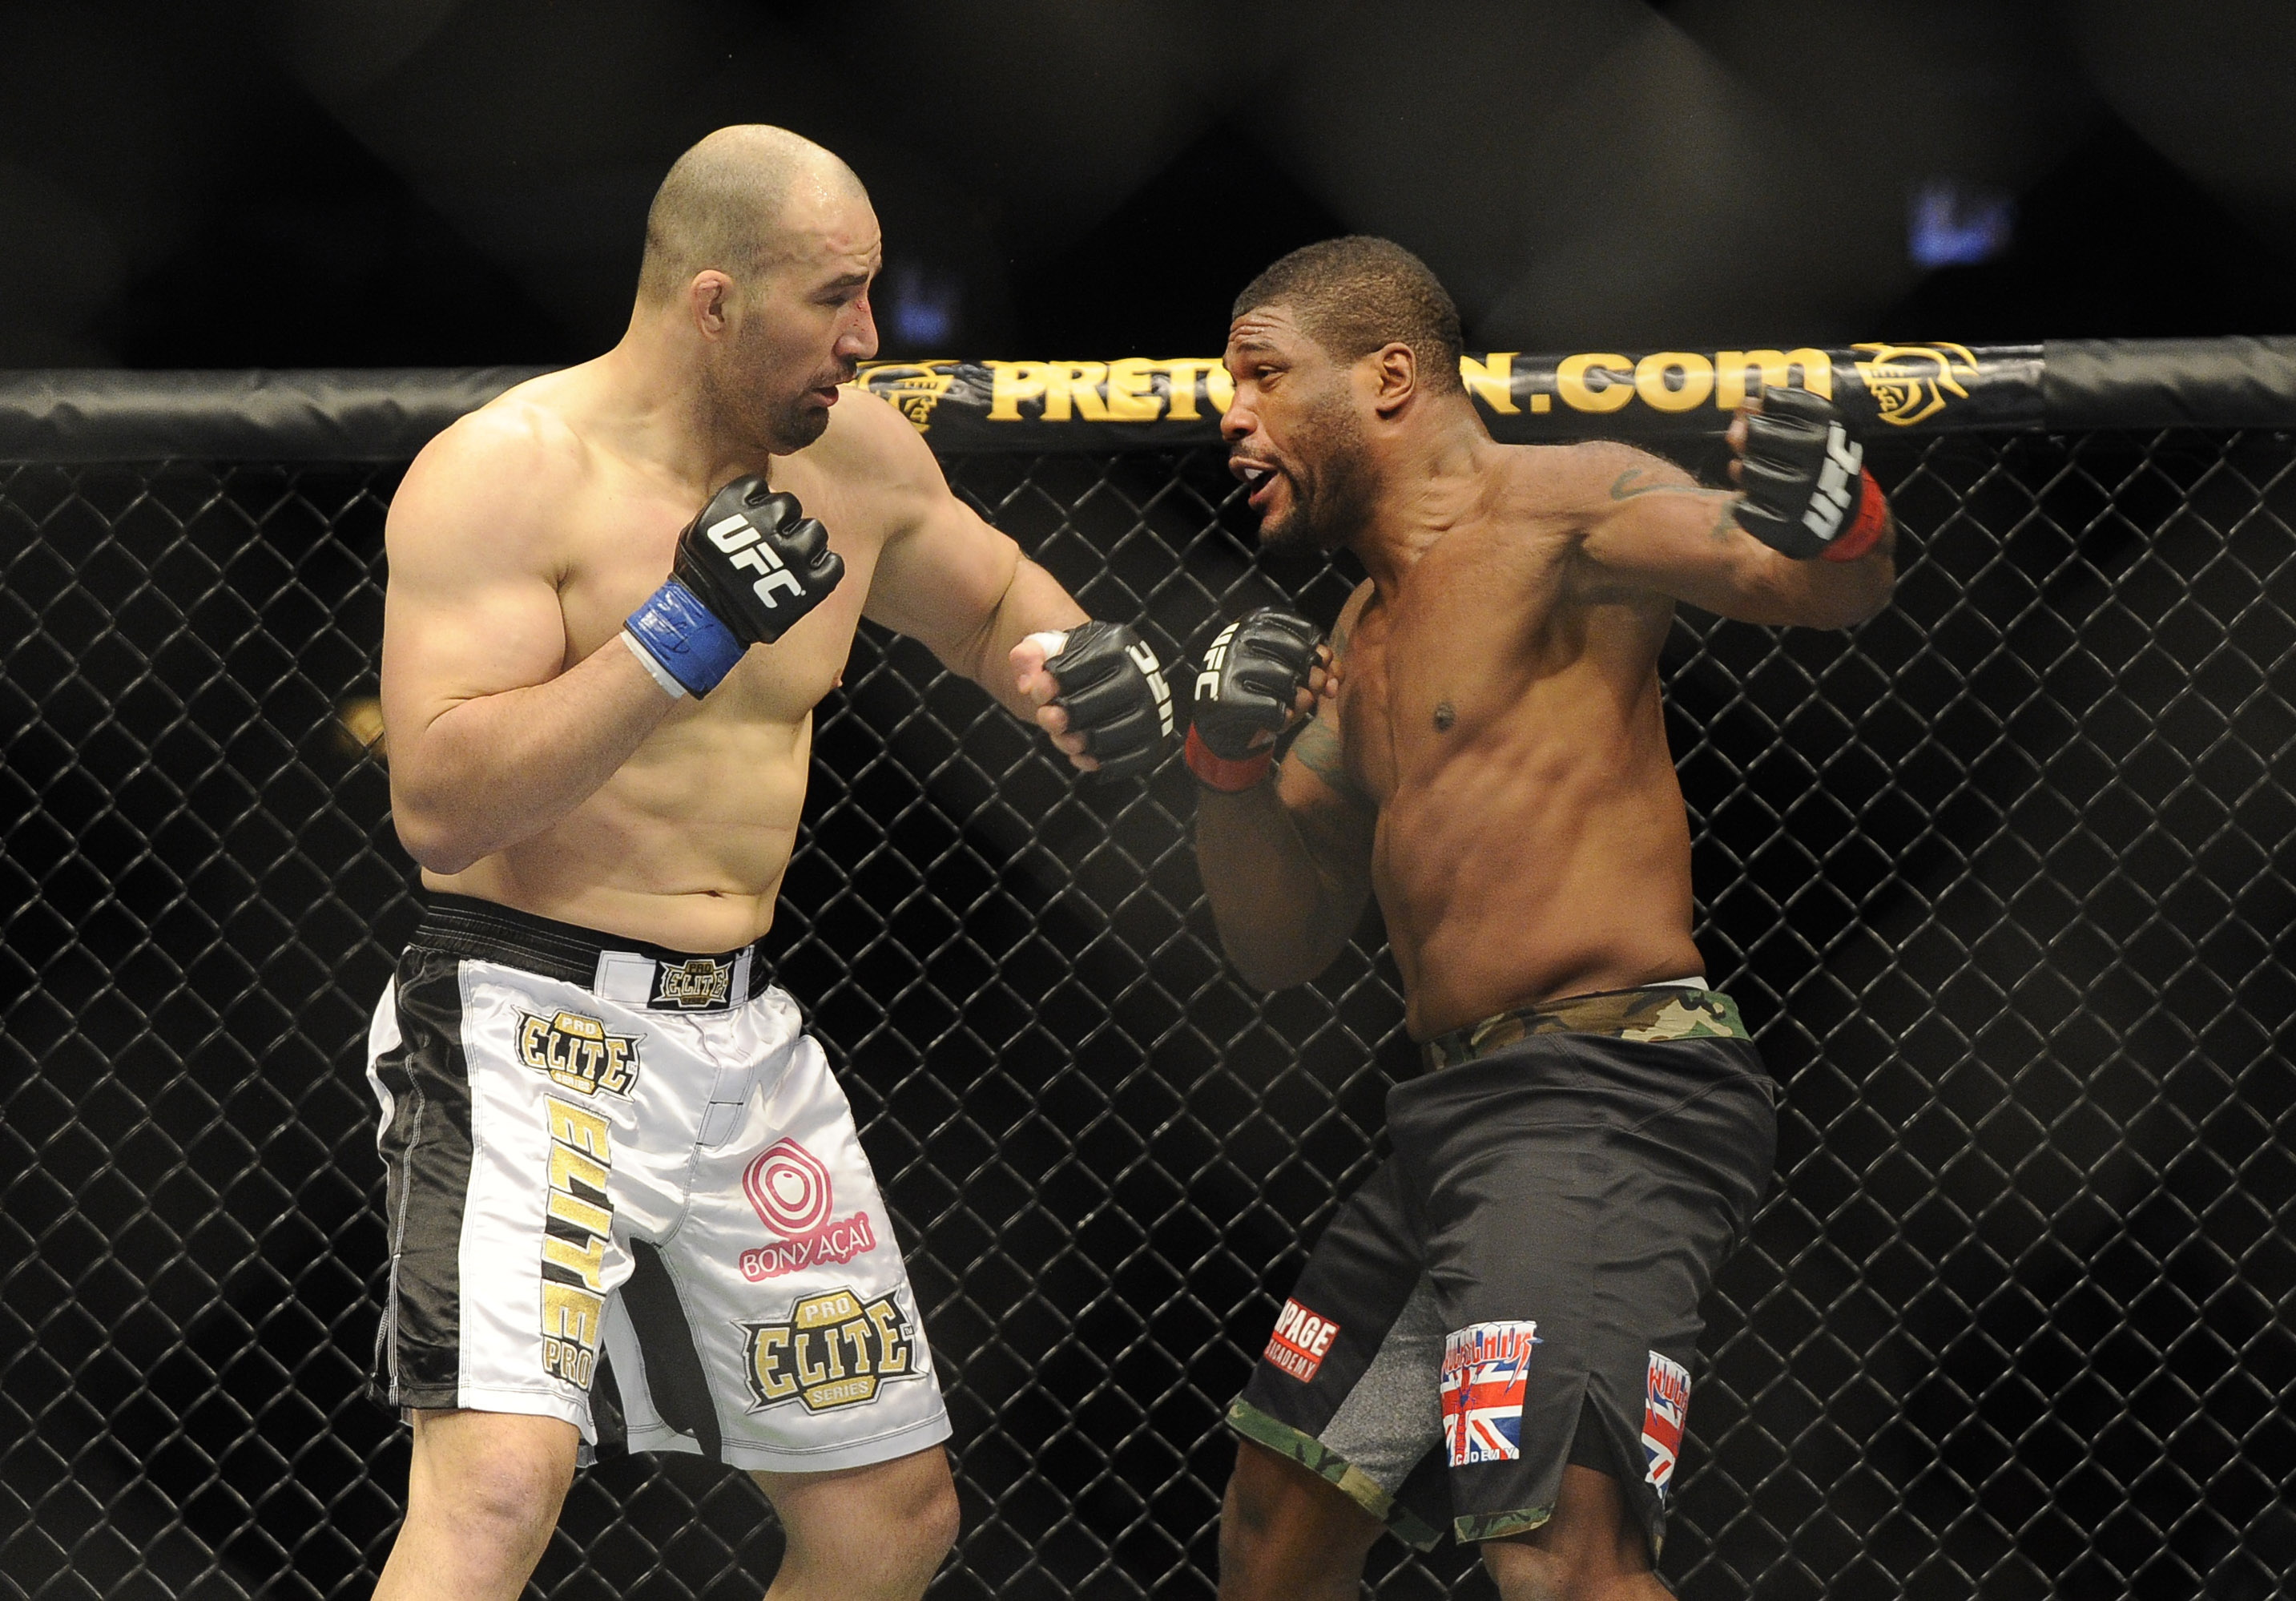 Rampage Jackson swings at Glover Teixeira during their fight. (USA Today Sports)